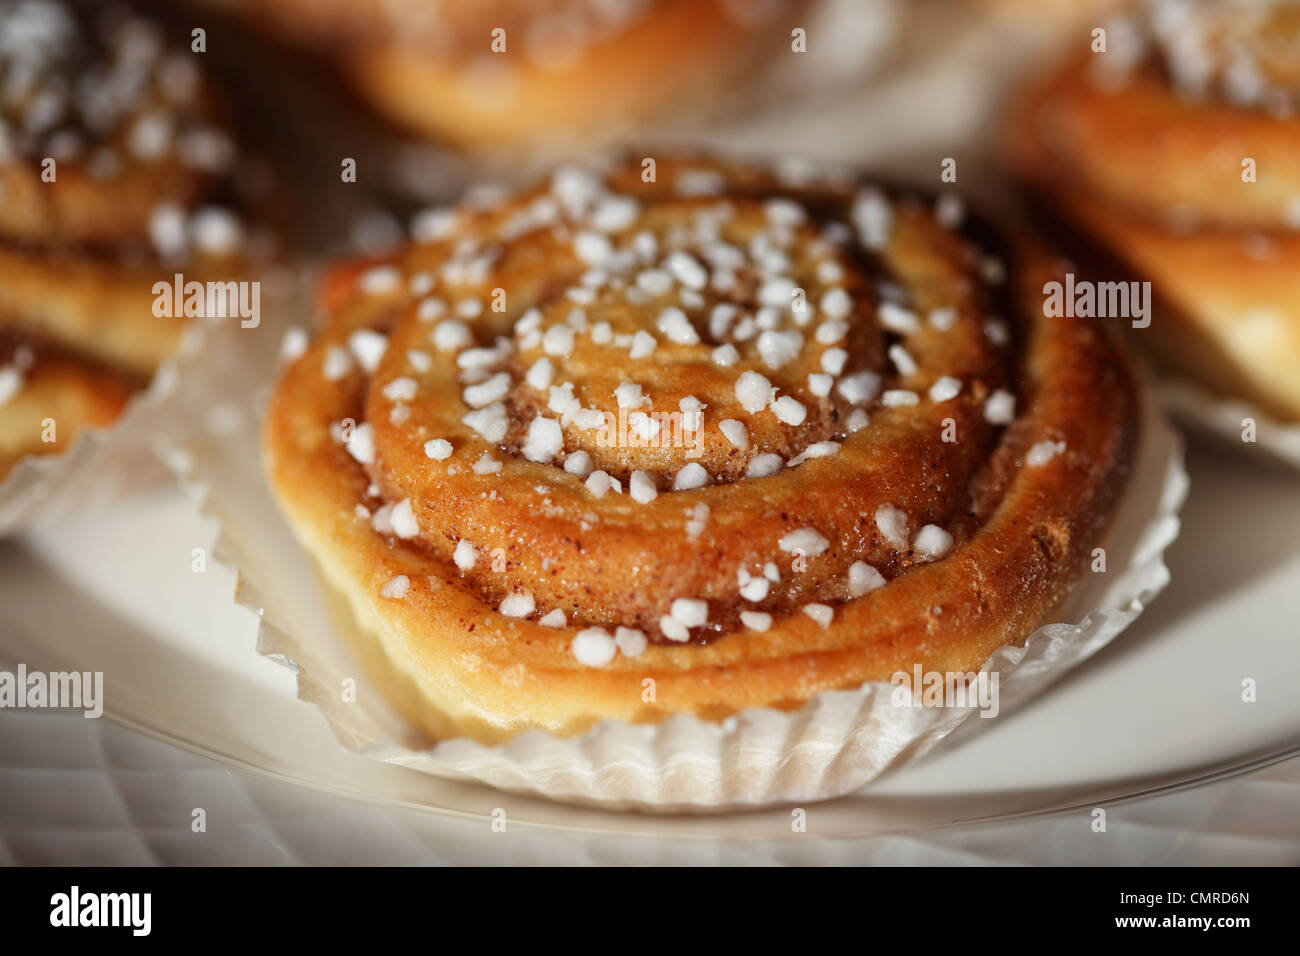 Korvapuusti, the popular Finnish pastry, served in Tampere, Finland. - Stock Image